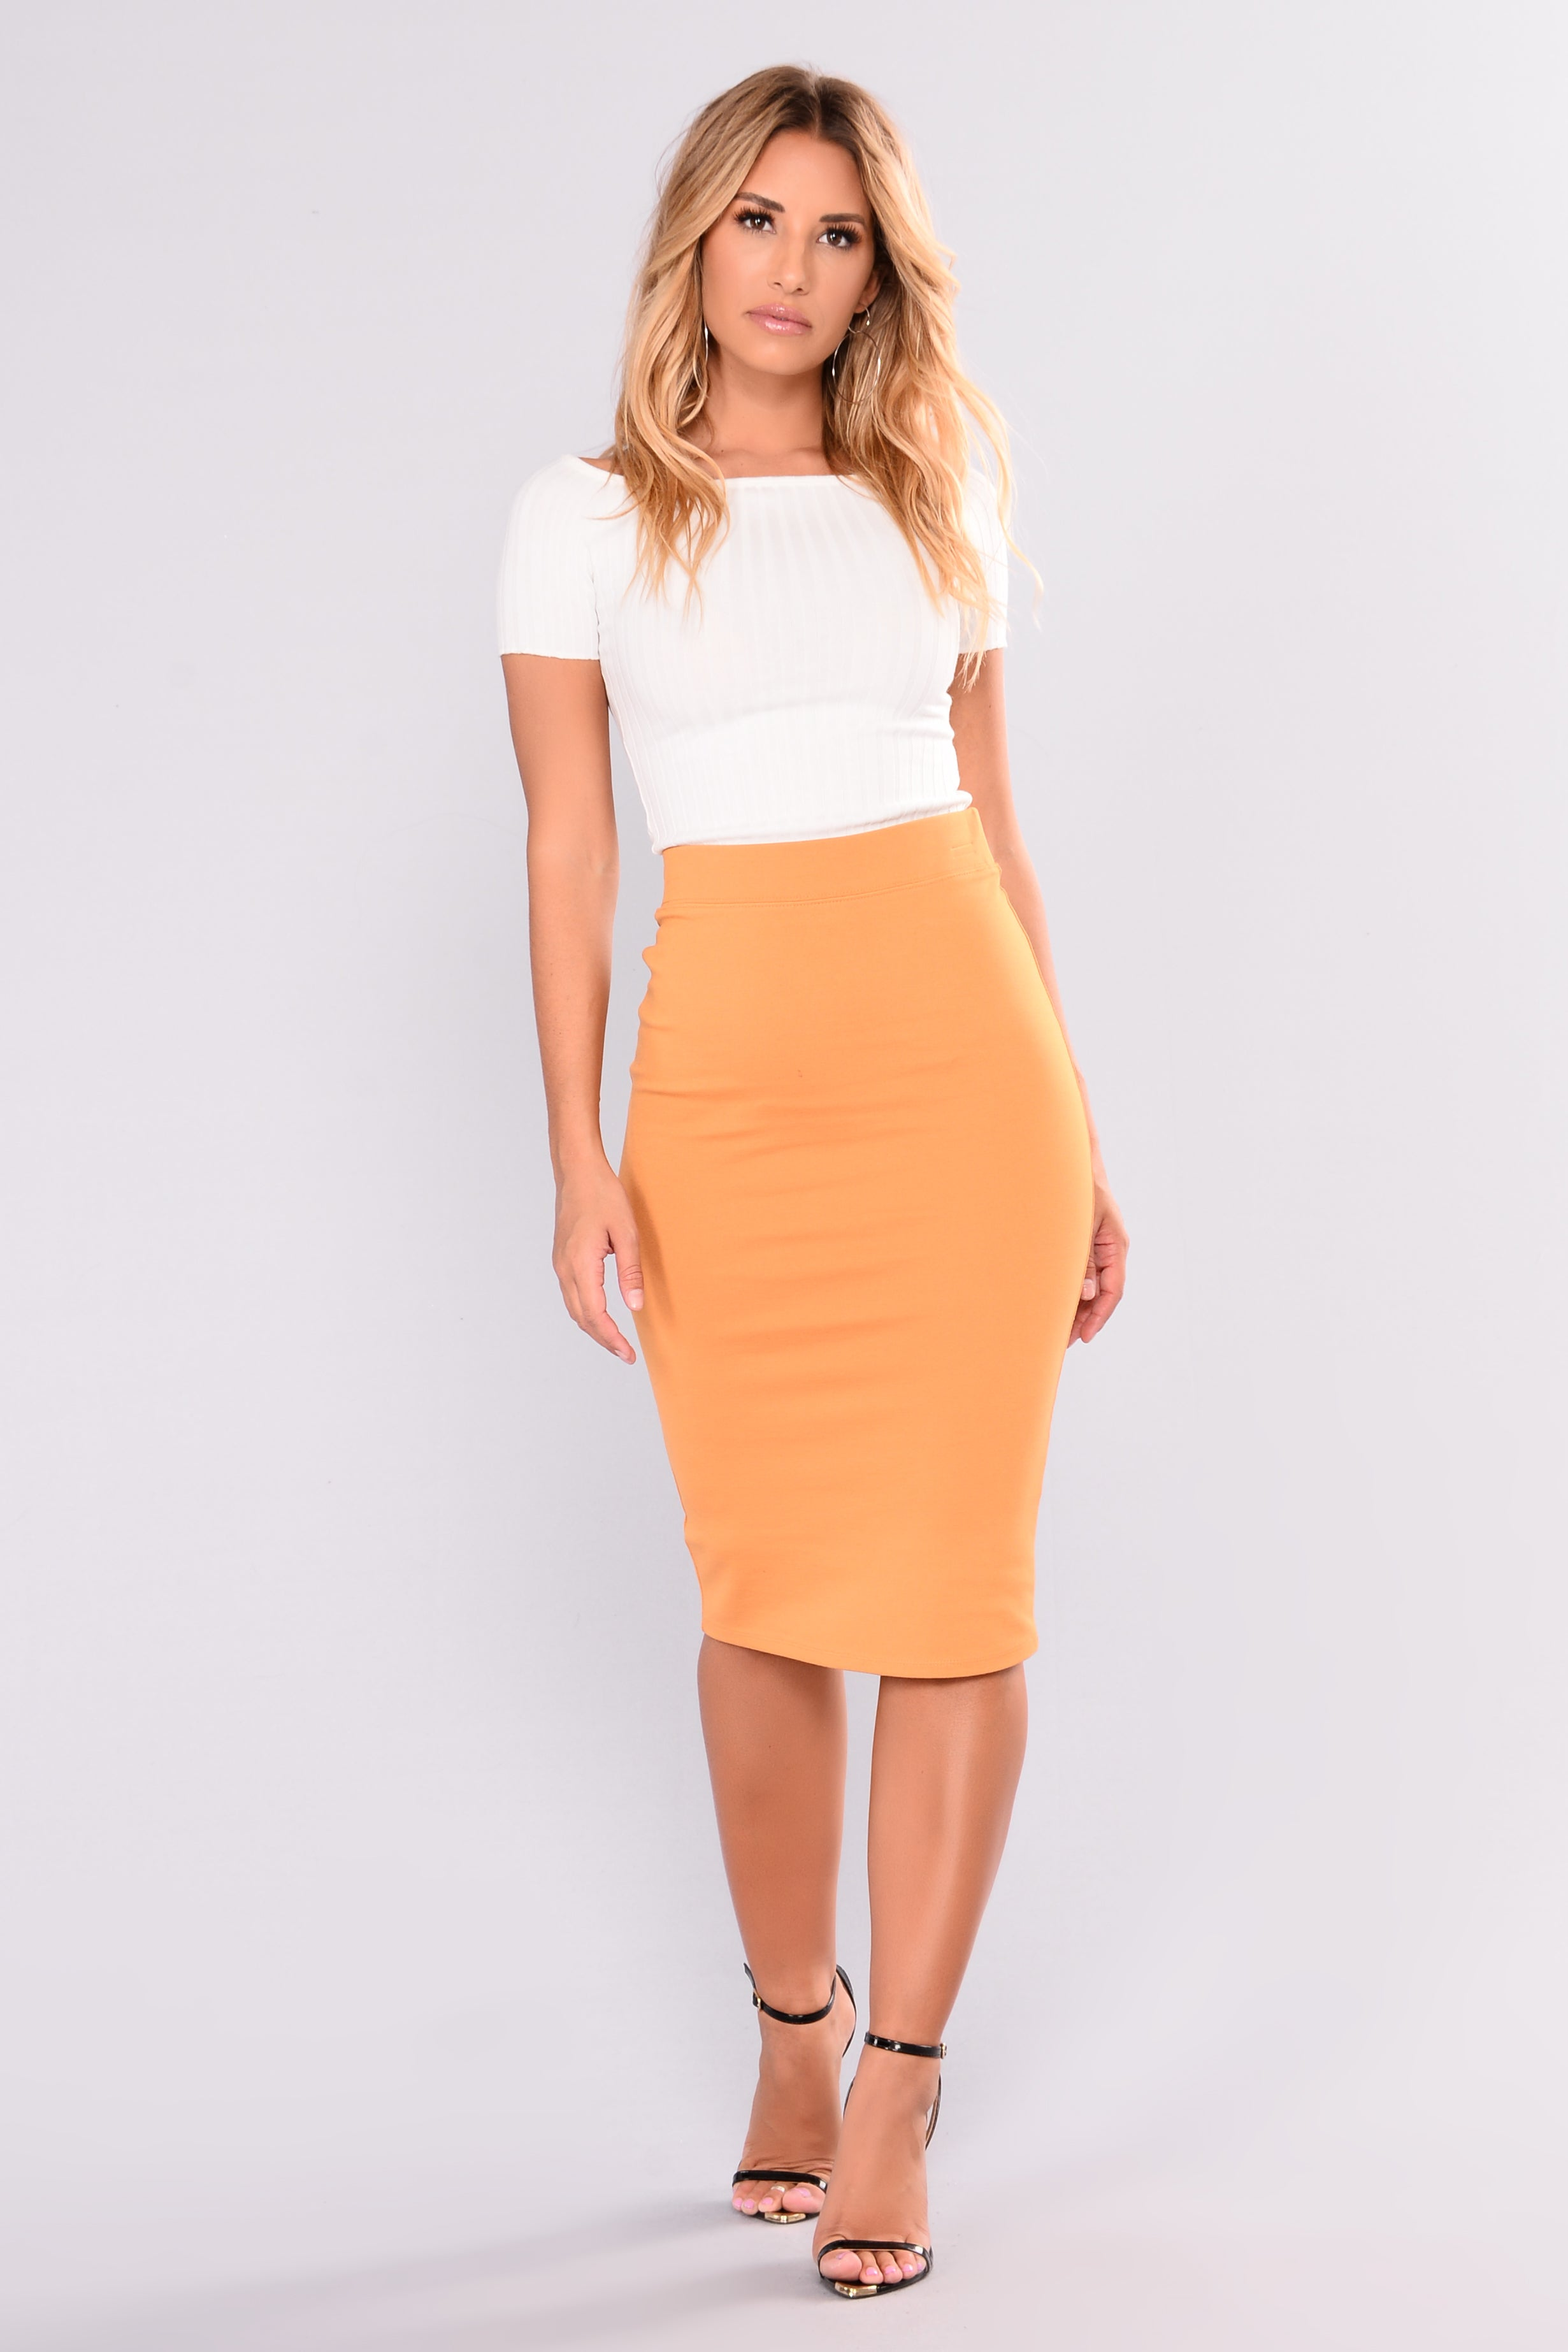 Cupro Skirt - Diamonds and Rust by VIDA VIDA Cheap Online Store Cheap Footlocker Finishline Where Can I Order Lowest Price Sale Online W8Dfsj